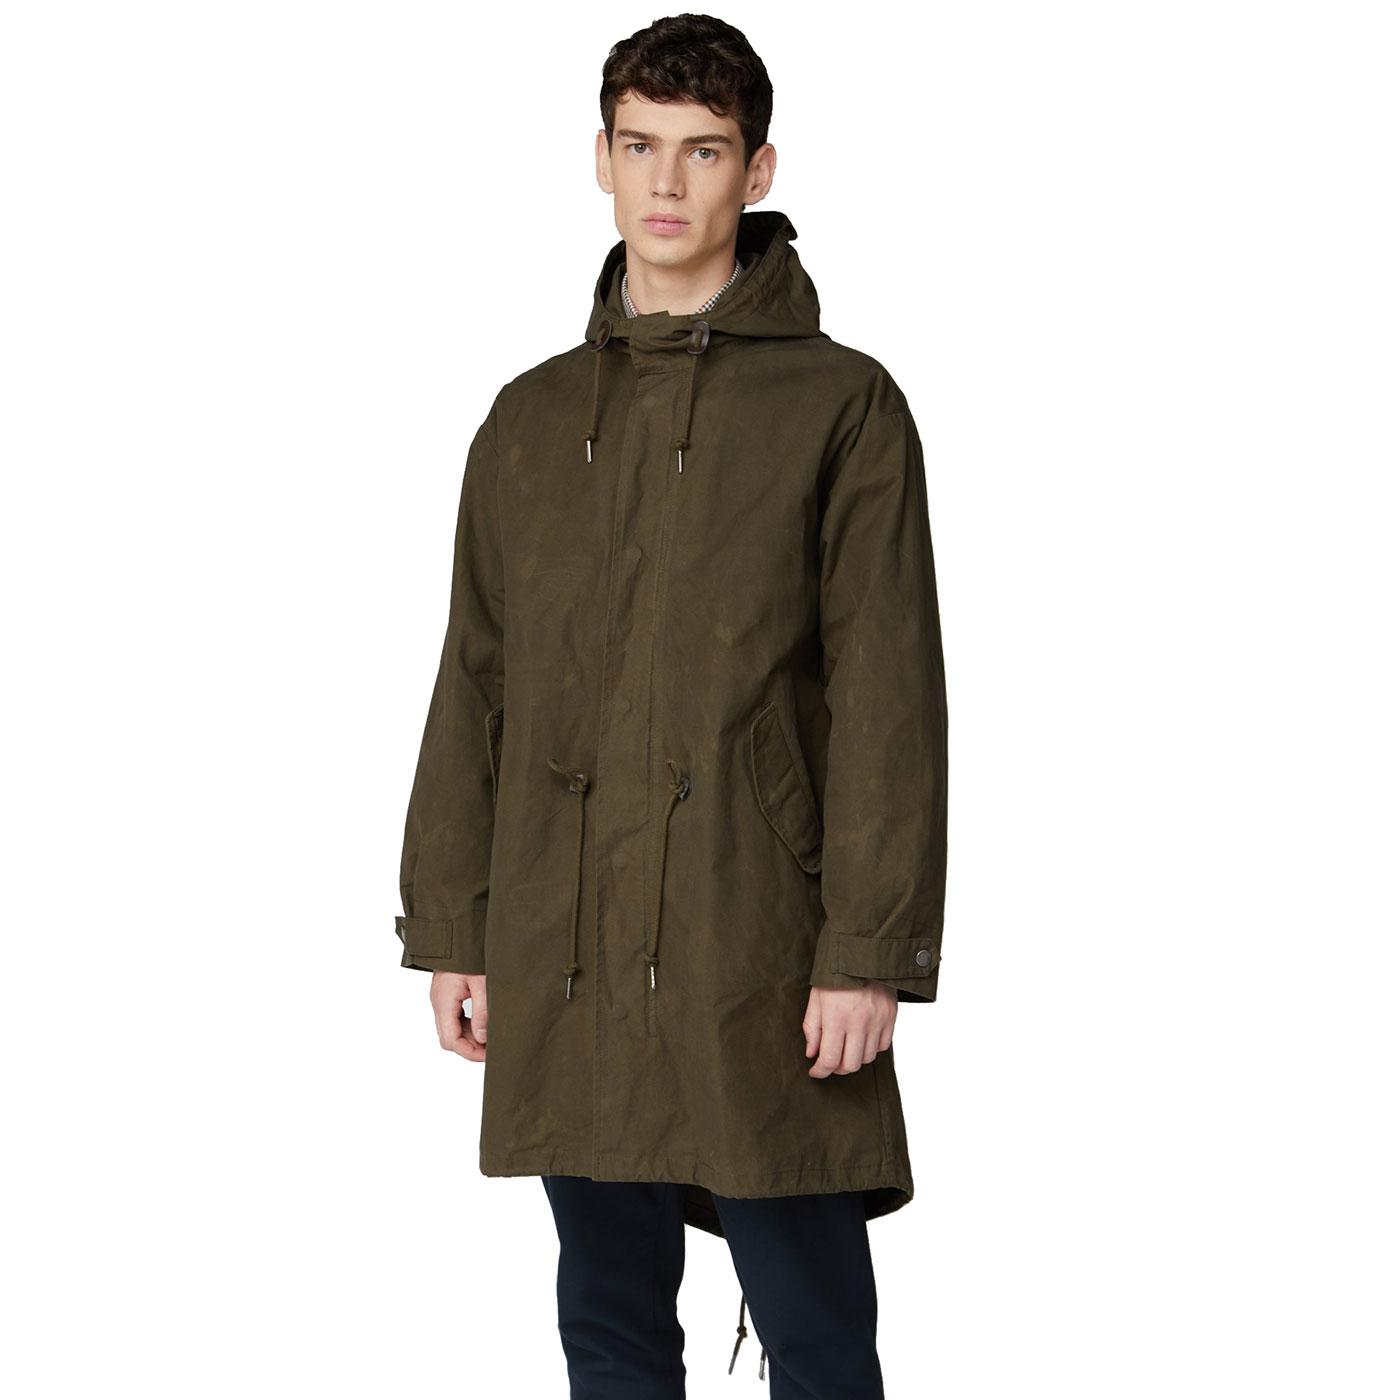 BEN SHERMAN Proofed Archive Fishtail Parka Jacket